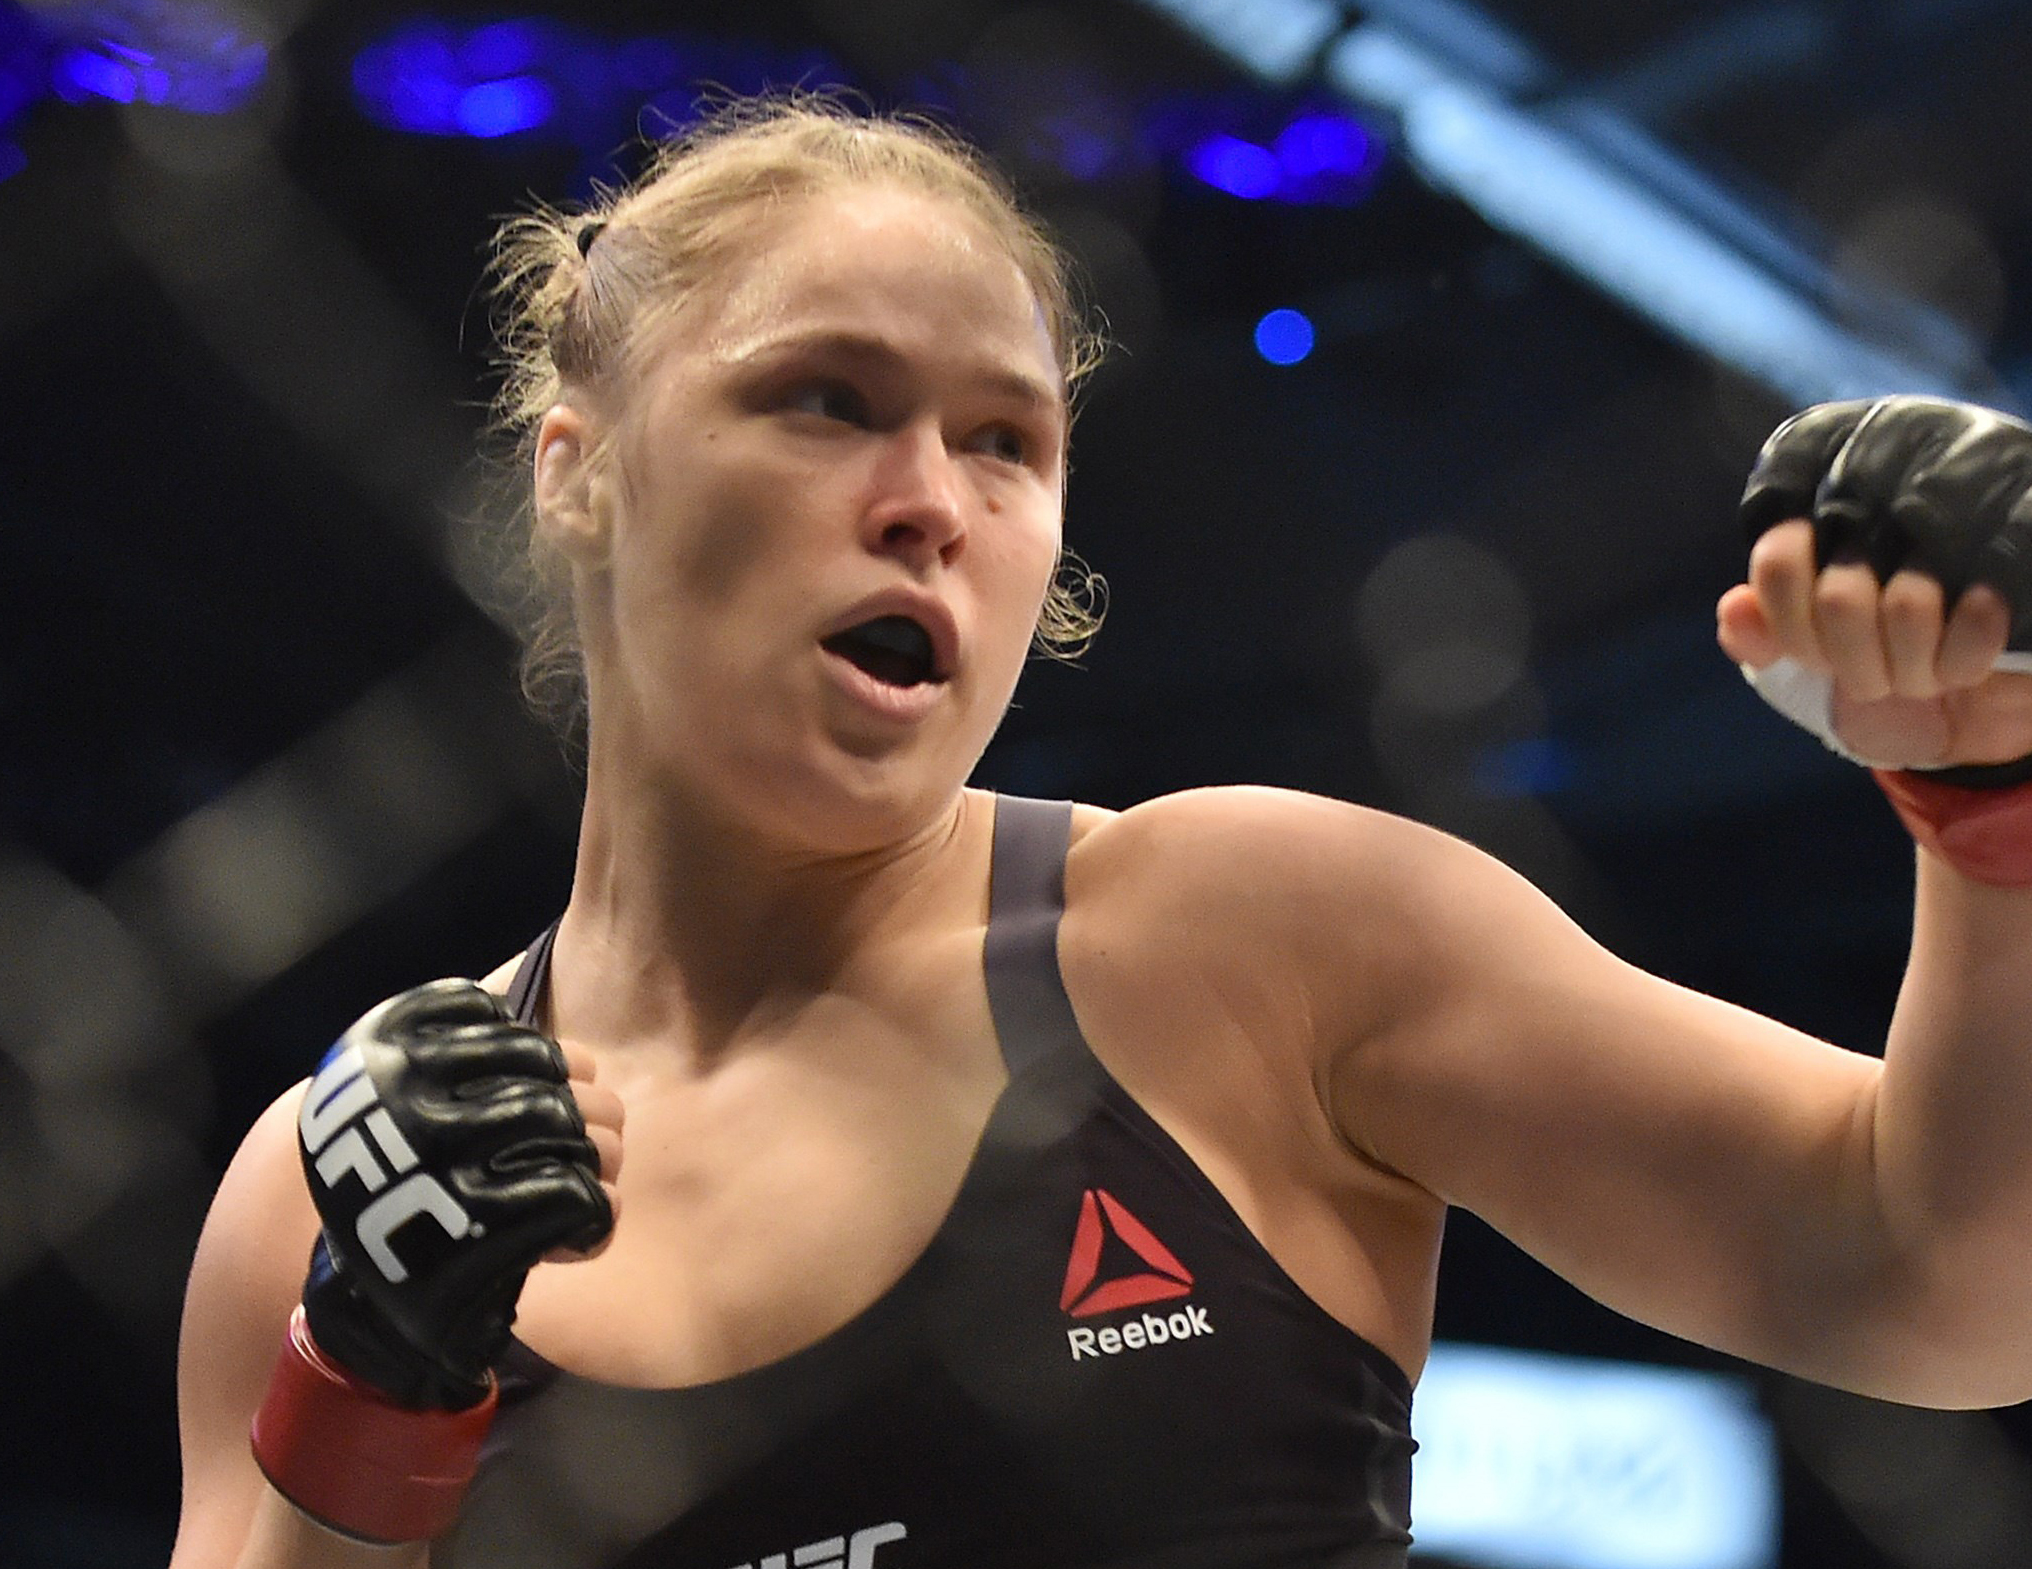 Dana White says Ronda Rousey probably done fighting